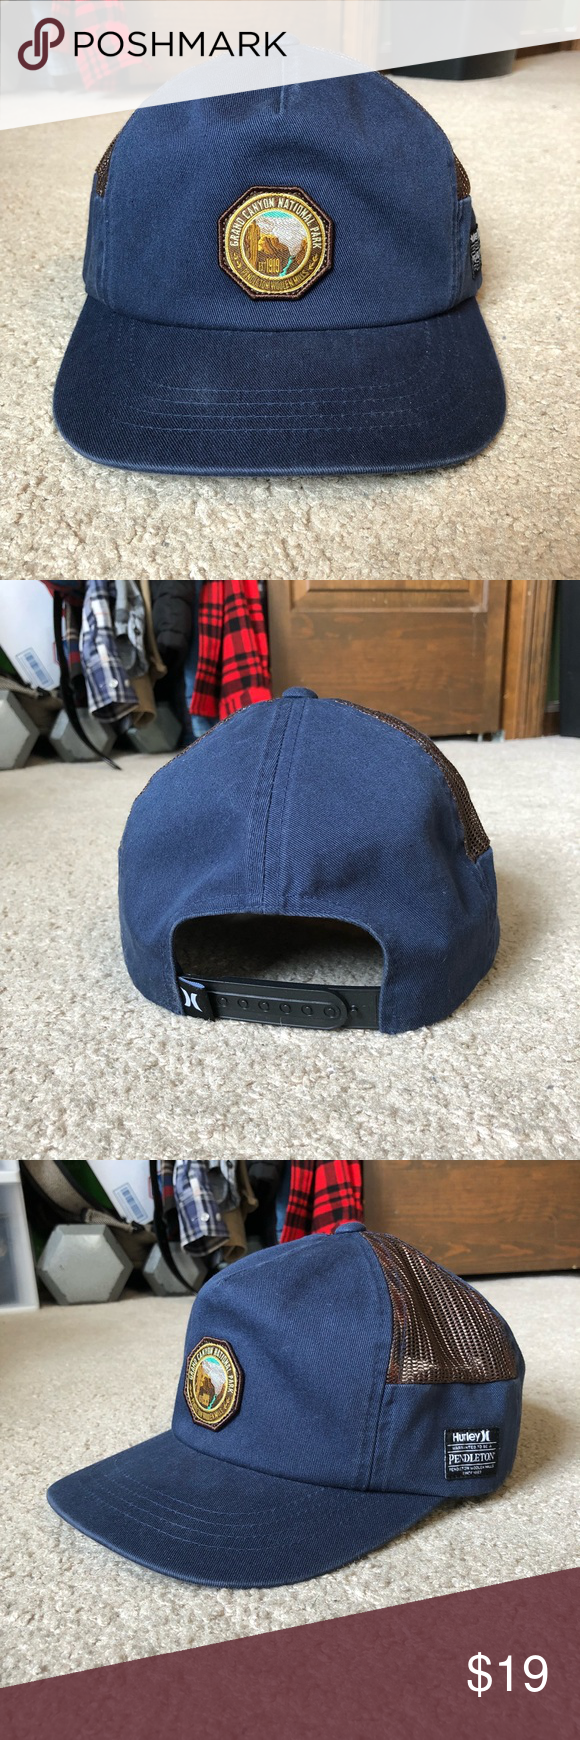 brand new 1498e 153bd Hurley   Pendleton Grand Canyon SnapBack Hat Hurley   Pendleton Grand  Canyon SnapBack Used Great condition - worn once! Feel free to reach out  with any ...